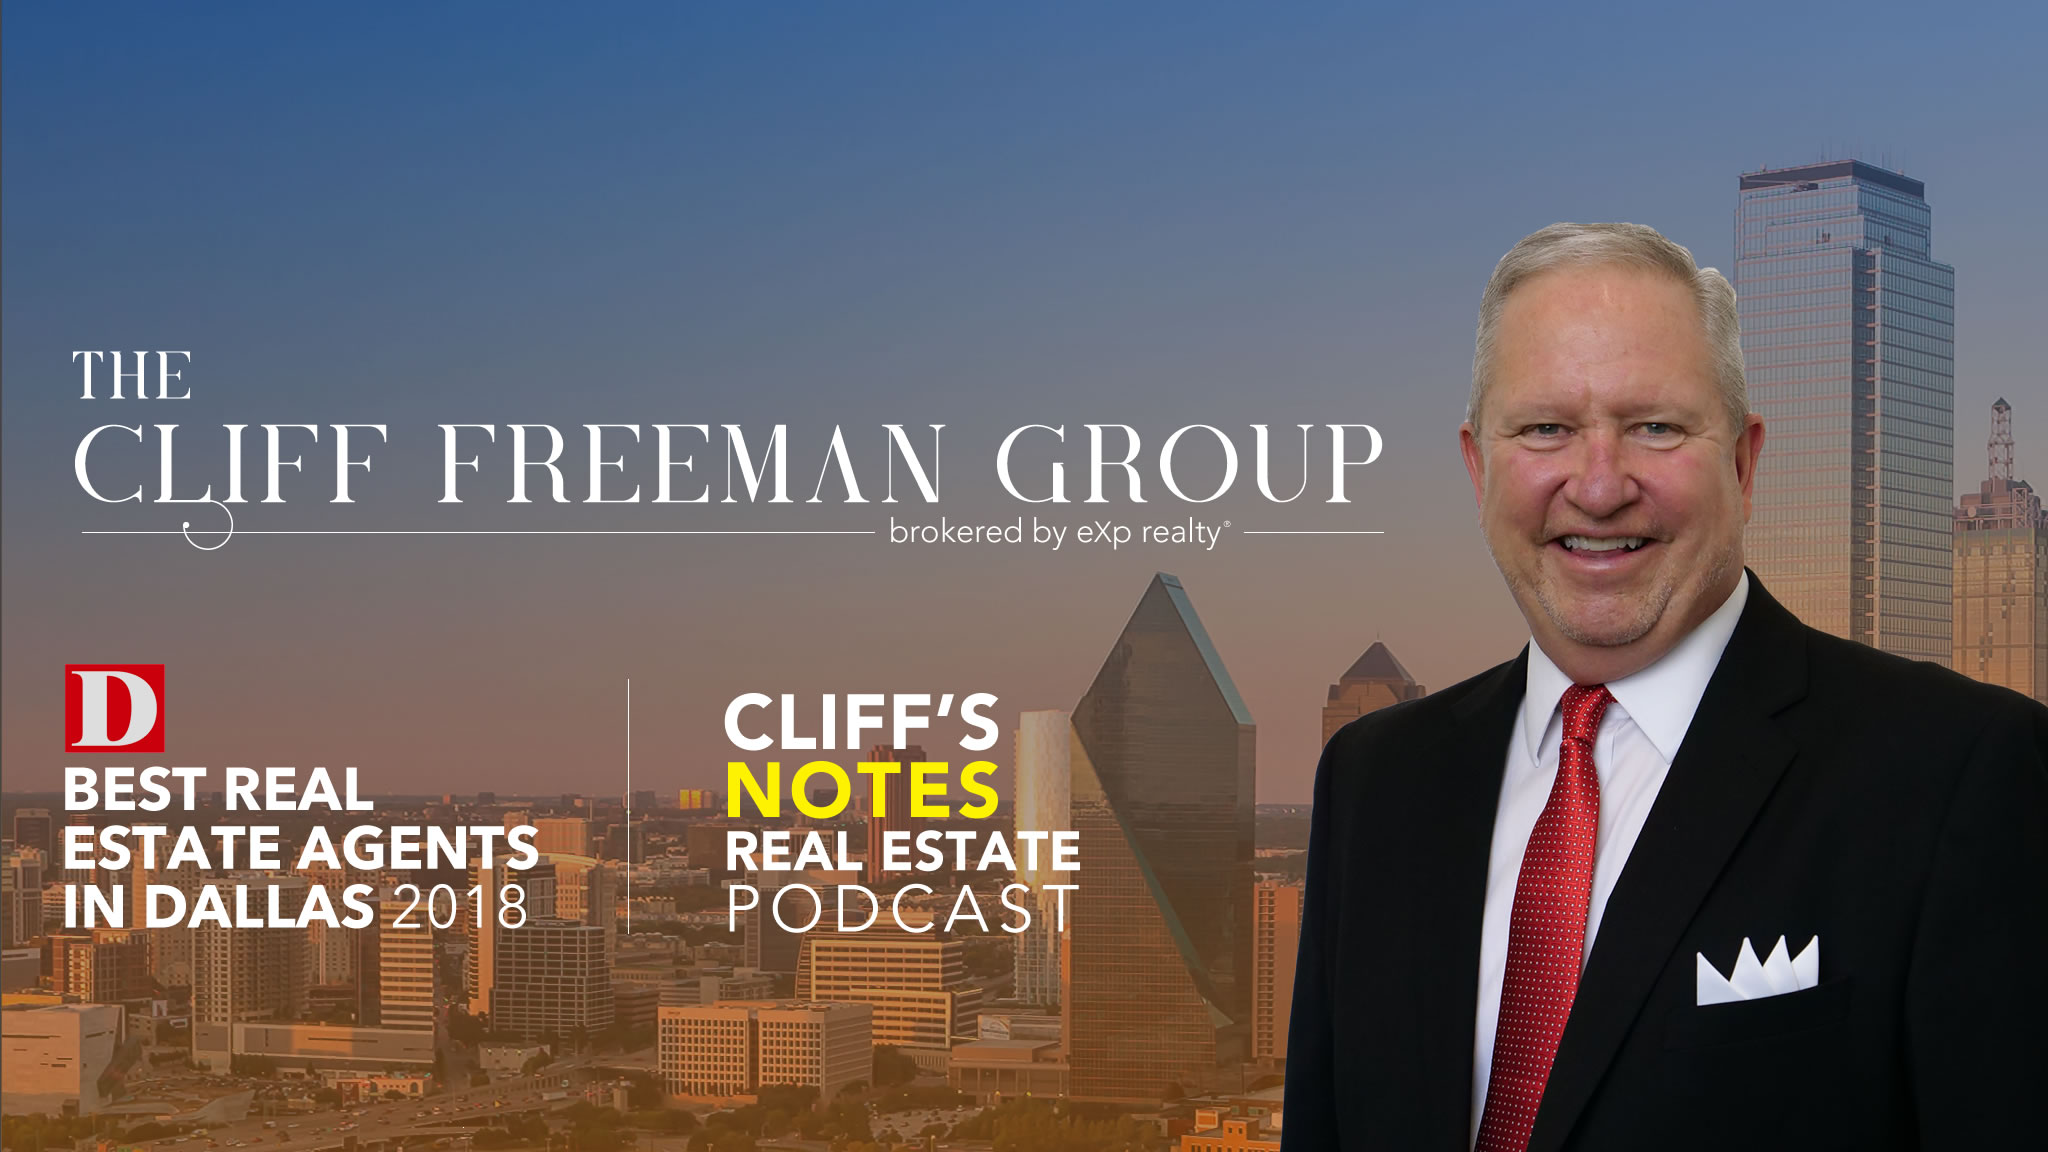 The Cliff Freeman Group brokered by eXp Realty LLC logo